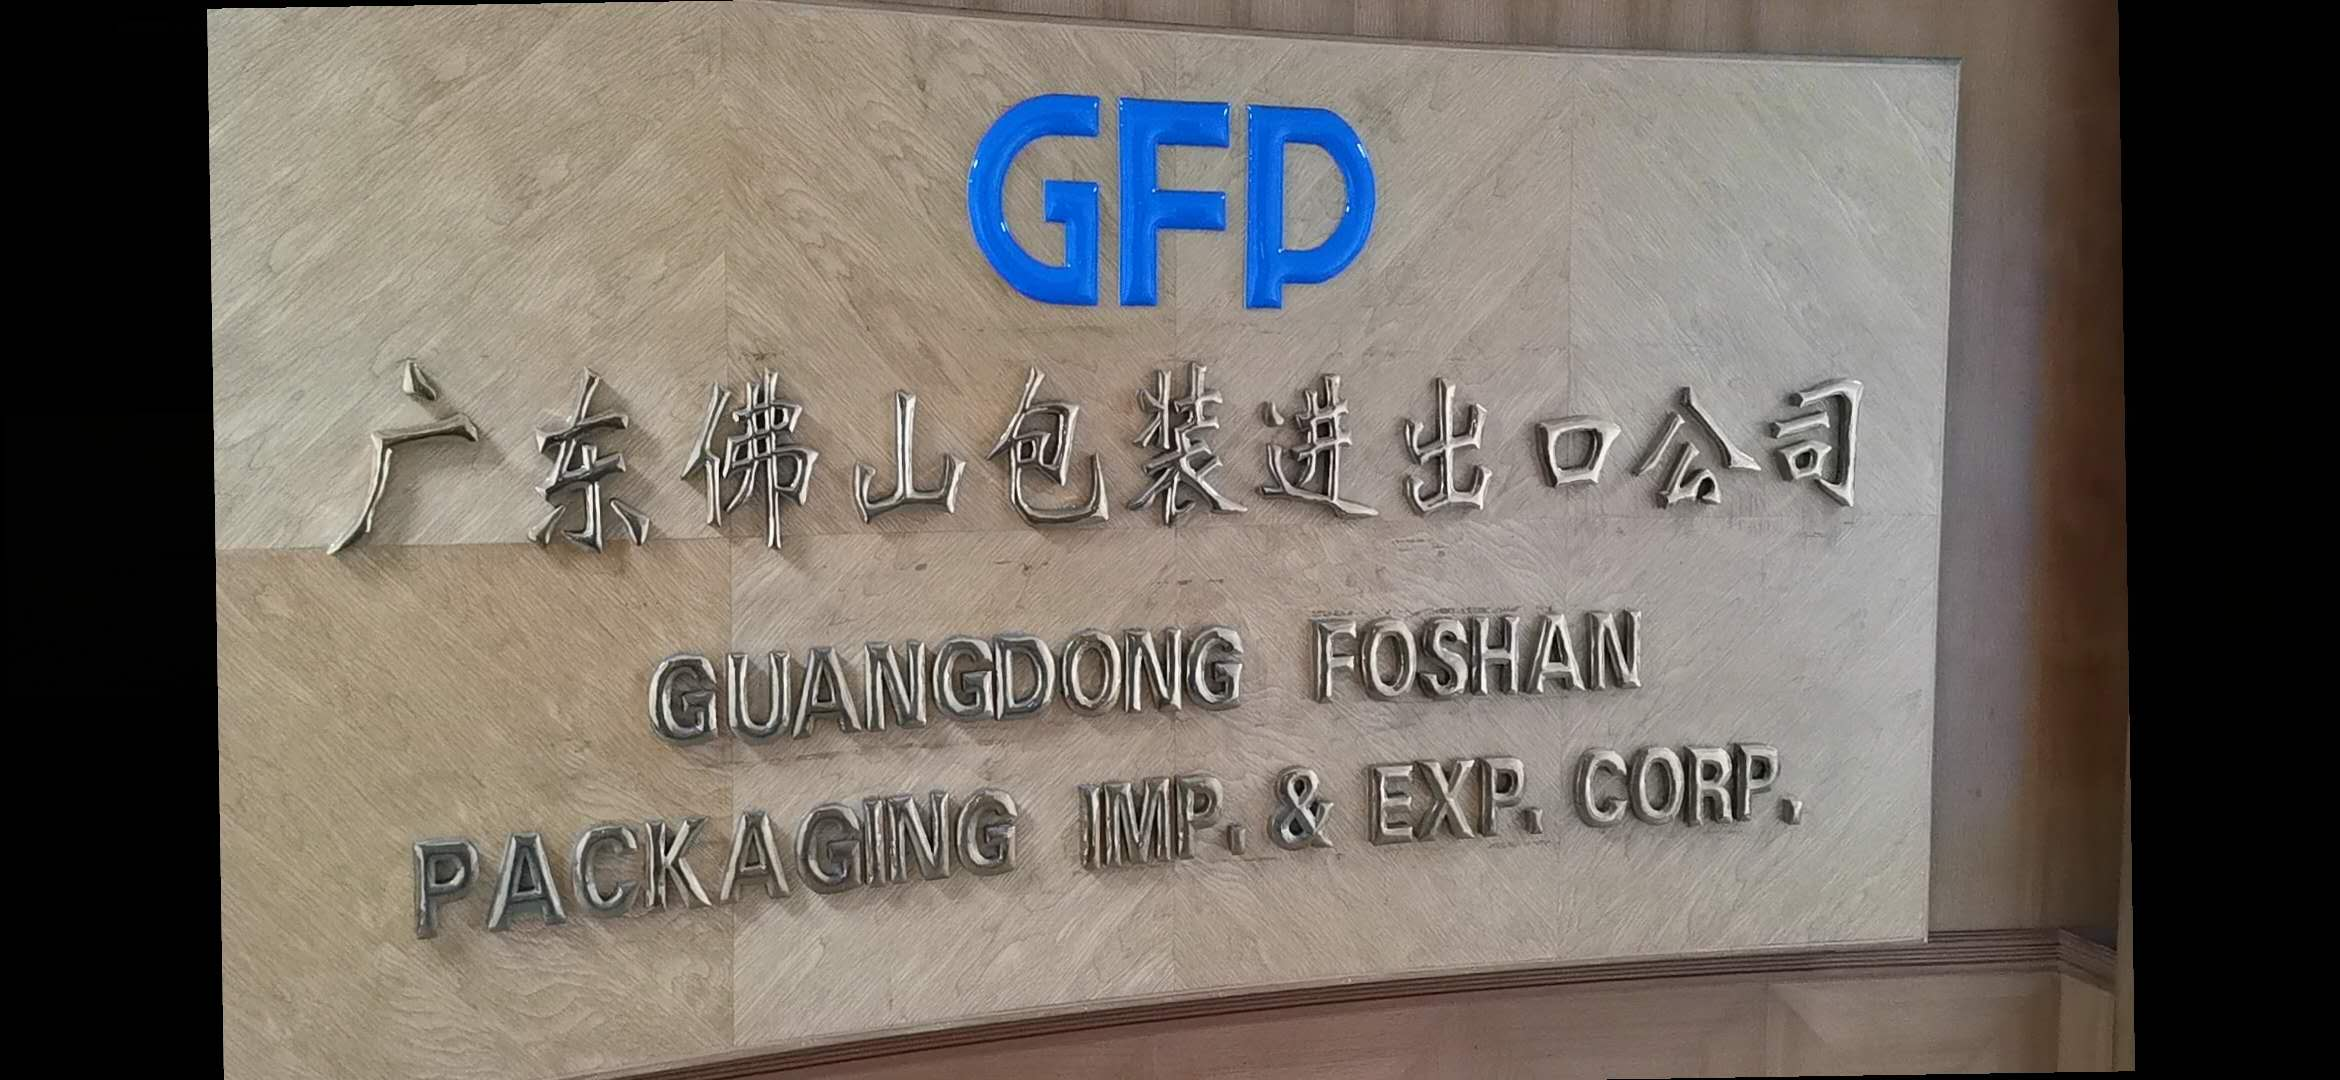 GUANGDONG FOSHAN PACKAGING IMP. & EXP. CO., LTD